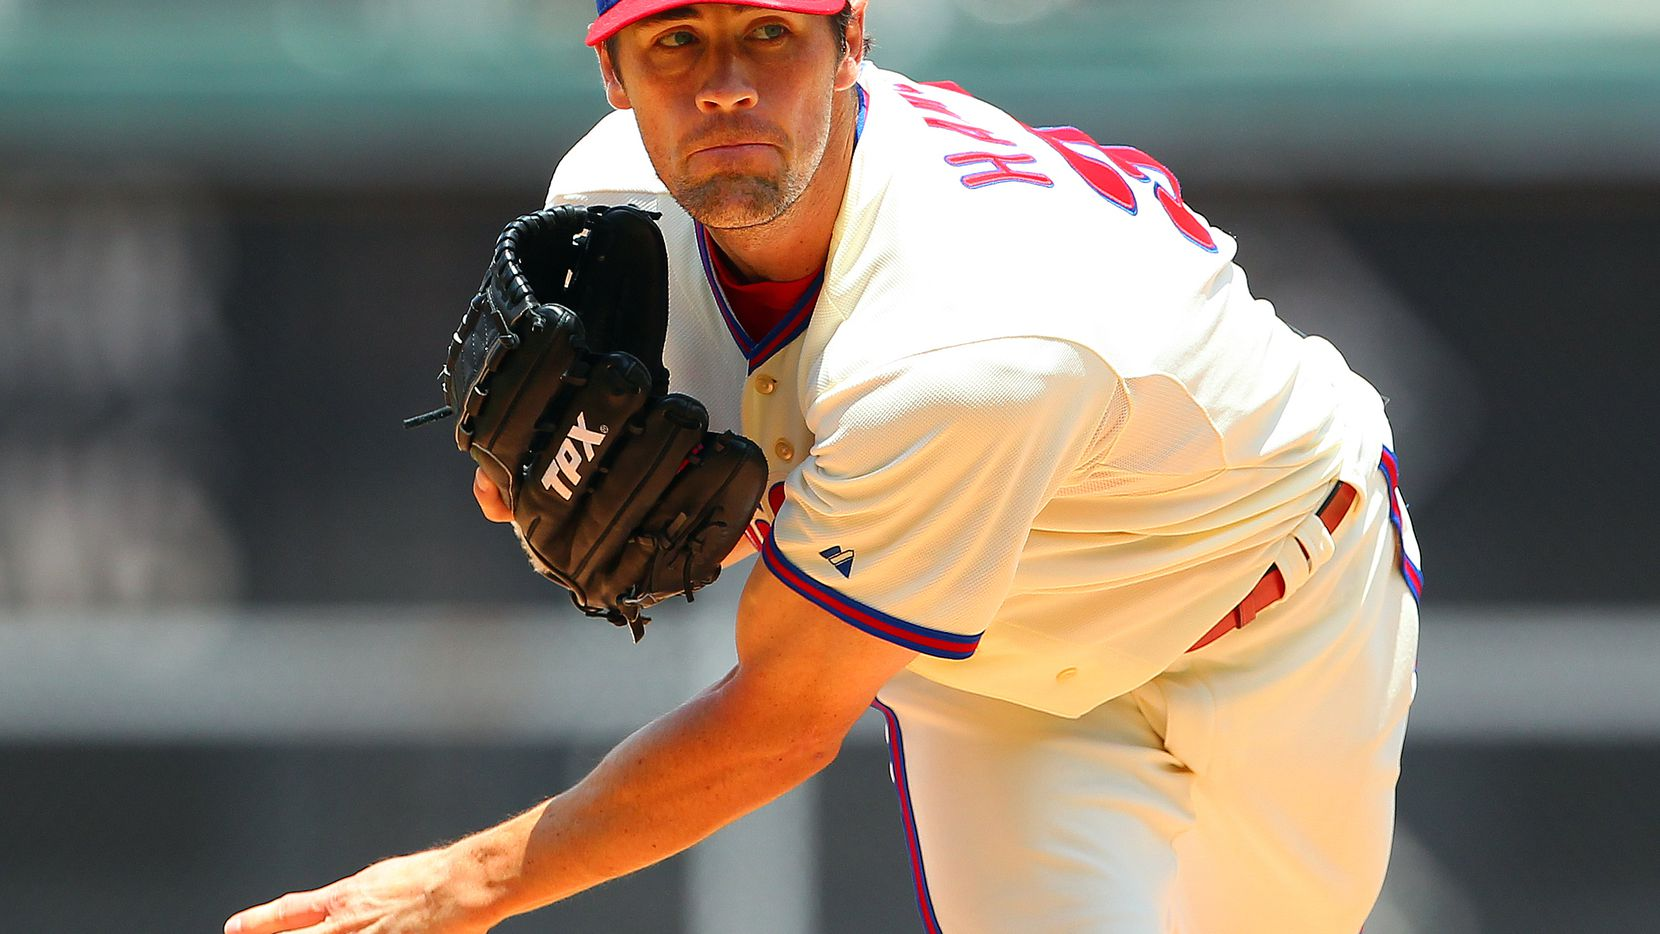 LHP COLE HAMELS, PHILADELPHIA: Phillies general manager Ruben Amaro has made his mark by trading prospects for veterans such as right-handers Roy Halladay and Roy Oswalt. Now, Amaro looks at the other side of the coin. Hamels can become a free agent after the season, and the Phillies need a talent infusion after including so many young players in deals. After working in the bandbox that is Citizens Bank Park, Hamels would not be intimidated by Rangers Ballpark in Arlington.